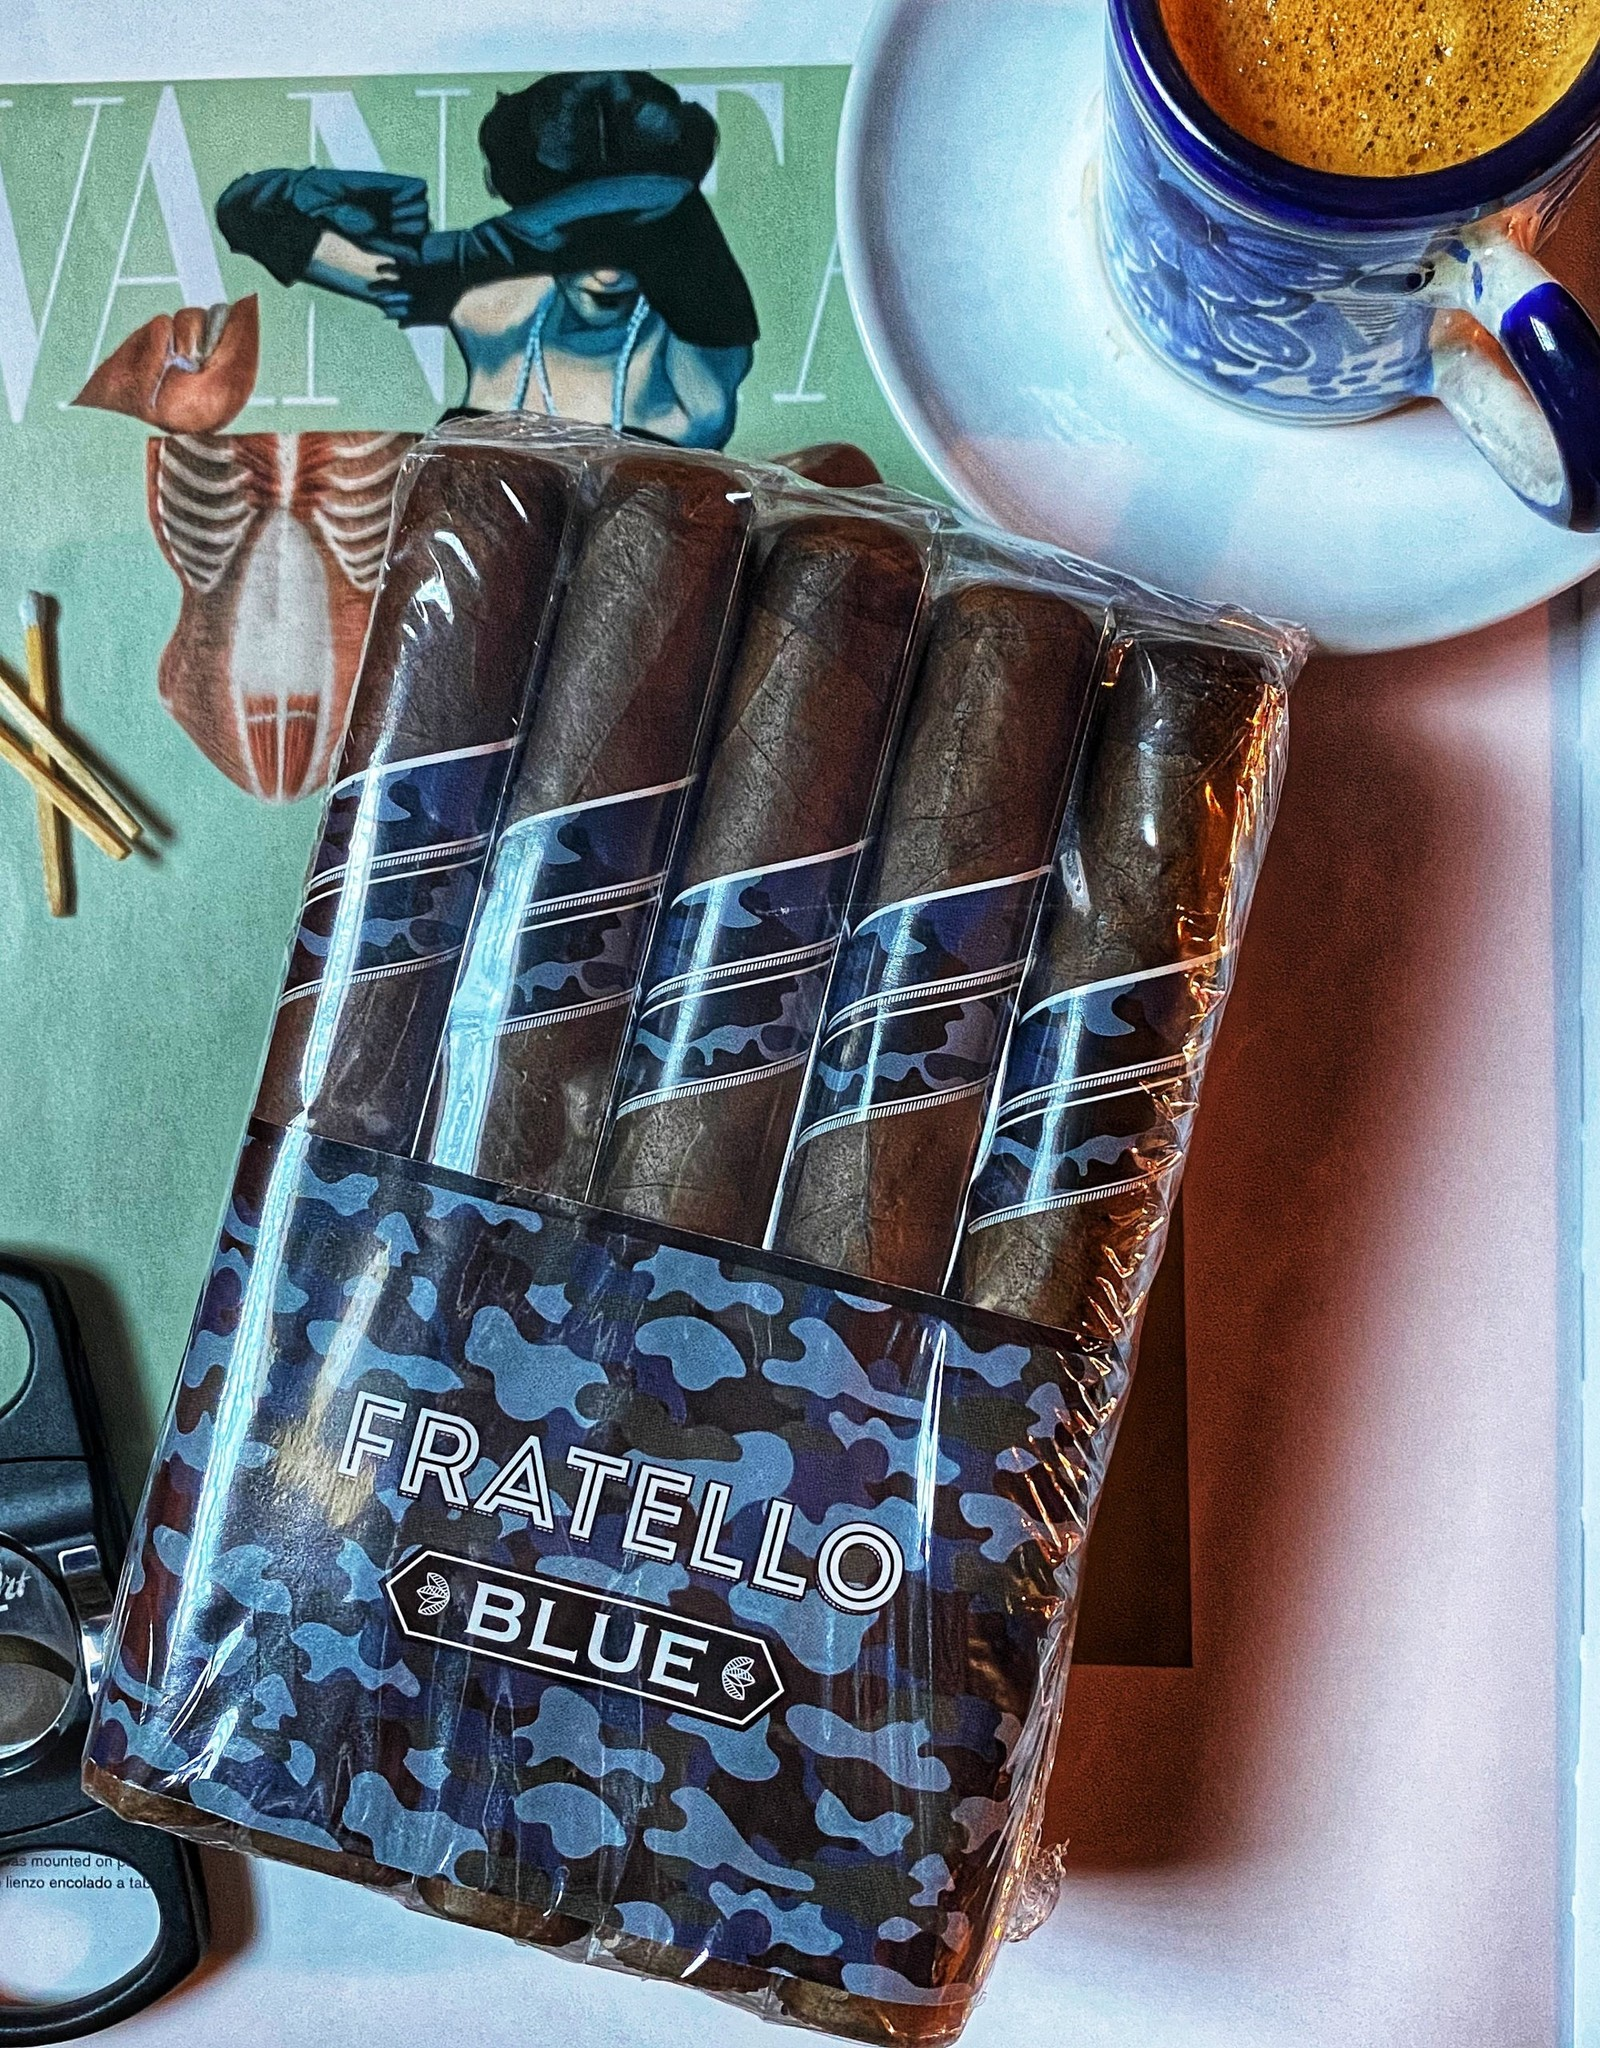 Fratello Fratello Blue Robusto 5 x 50 Bundle of 15